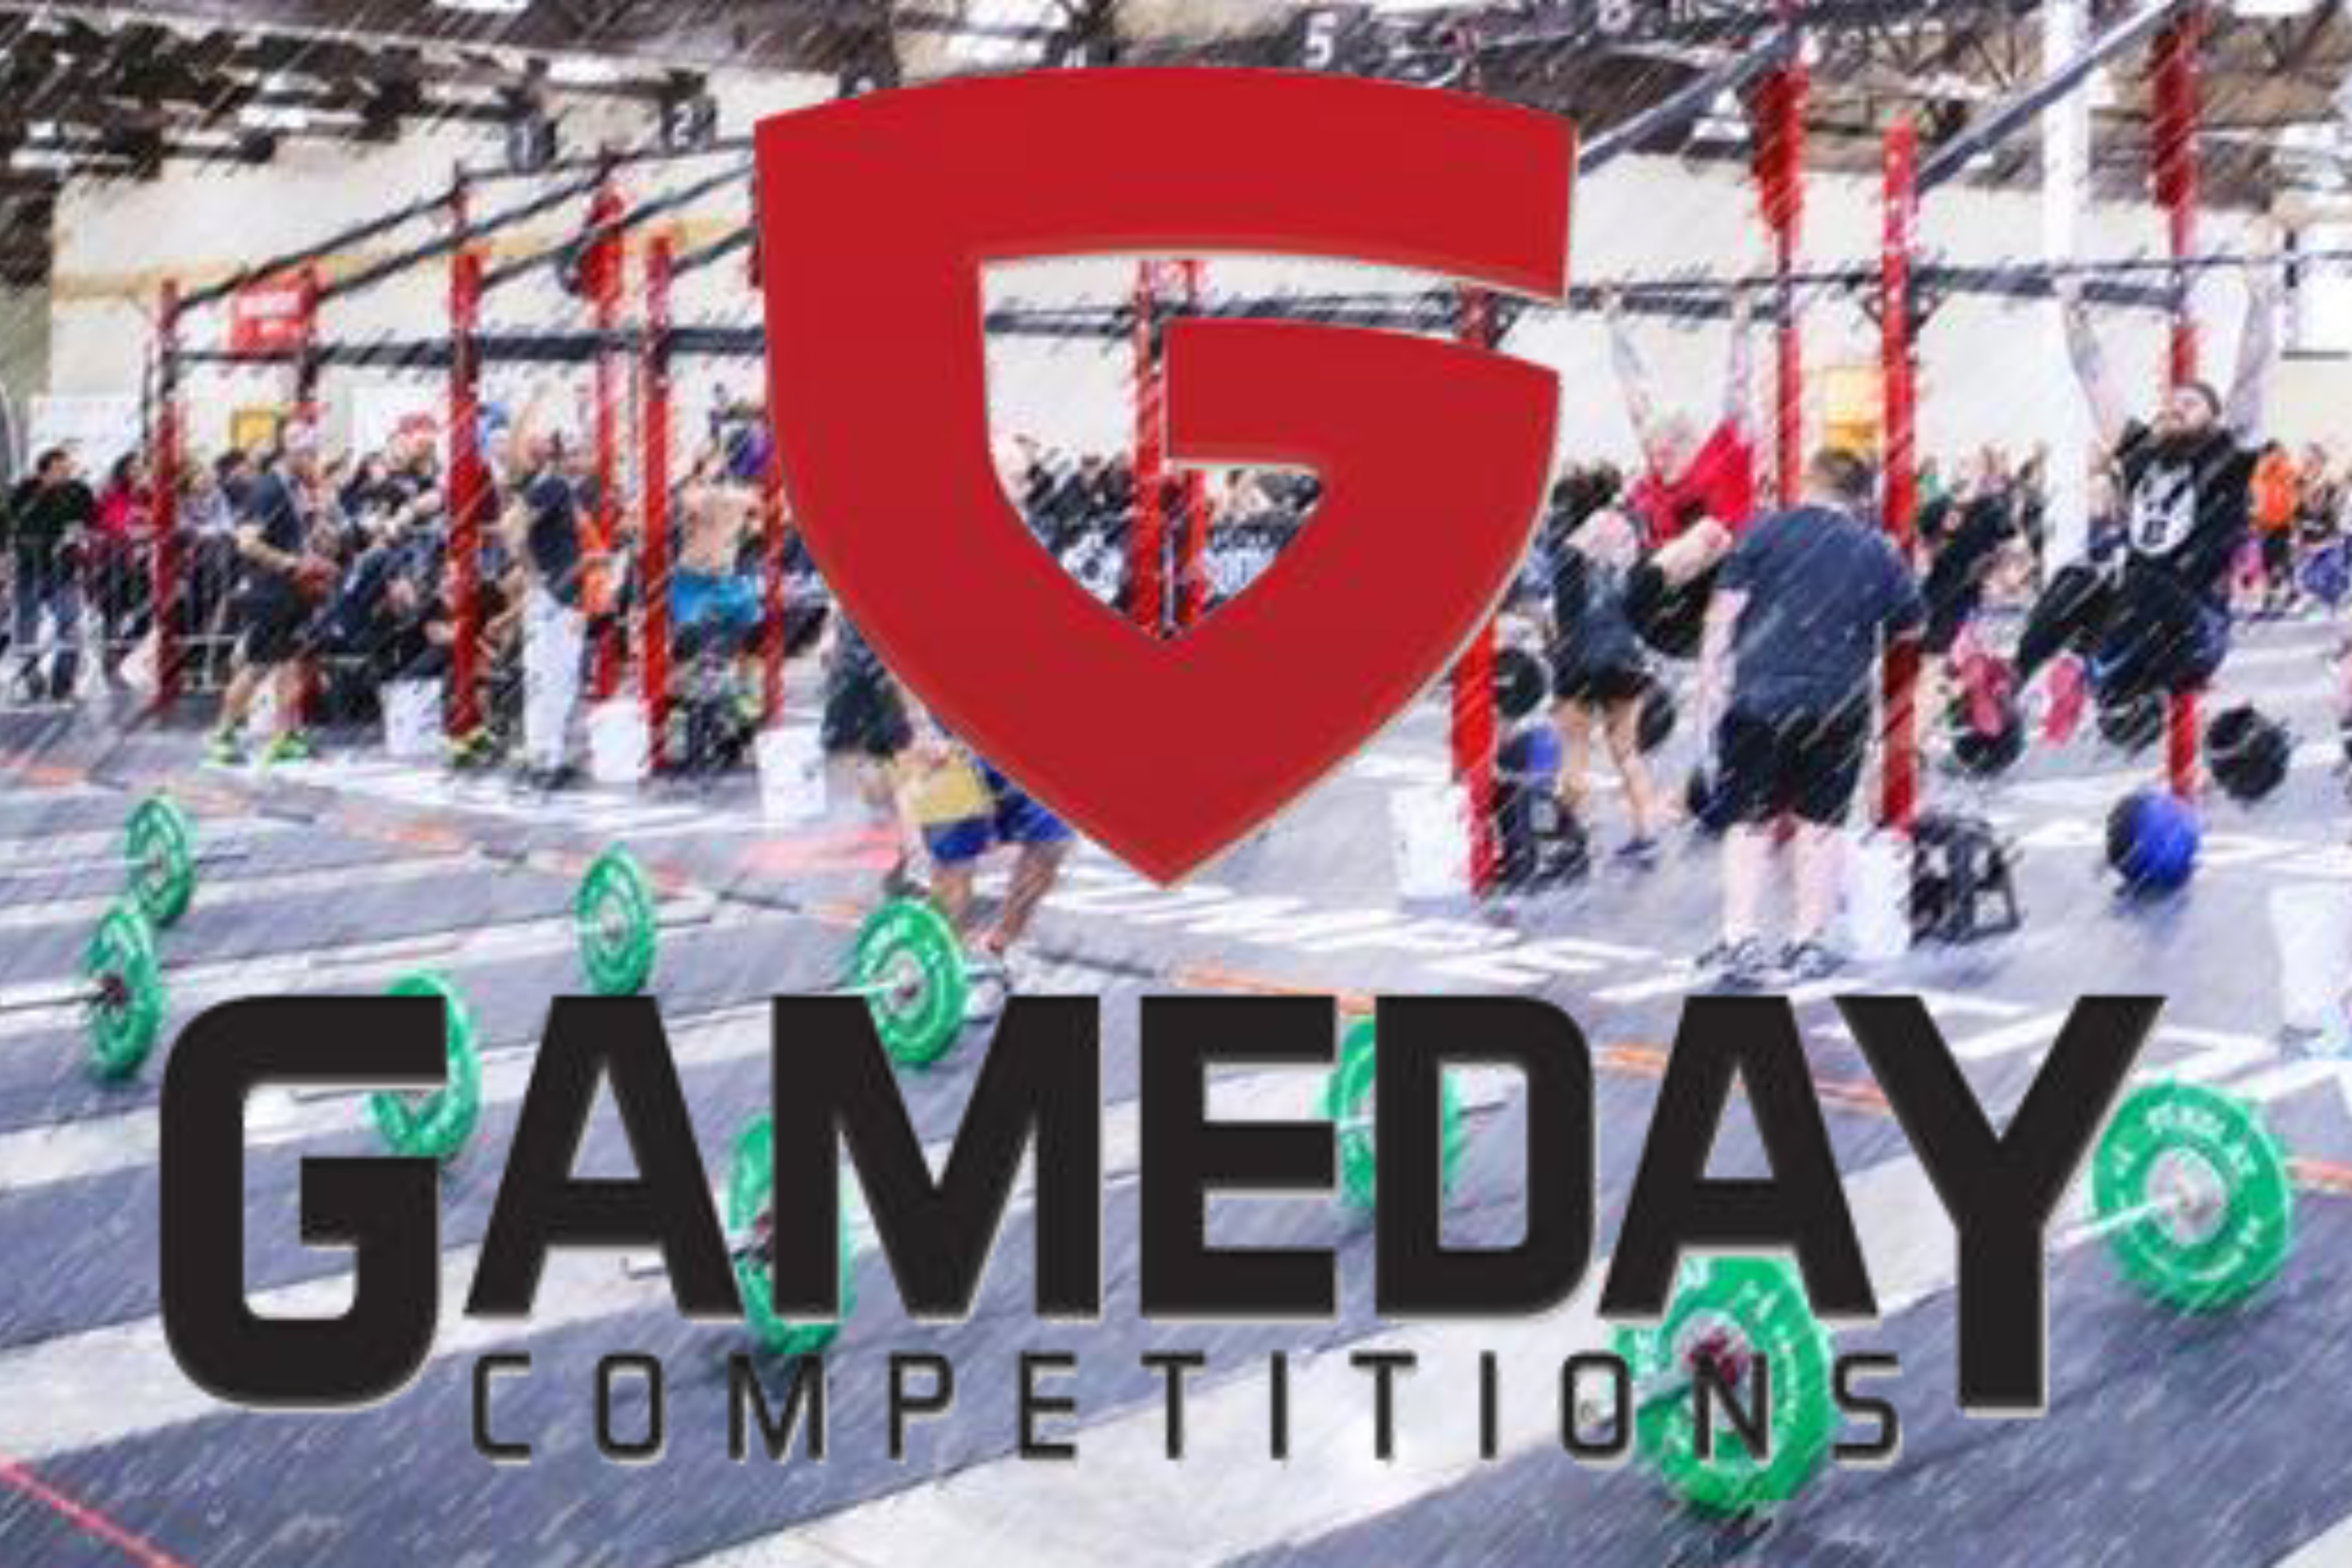 GameDay Competition logo over athletic competition